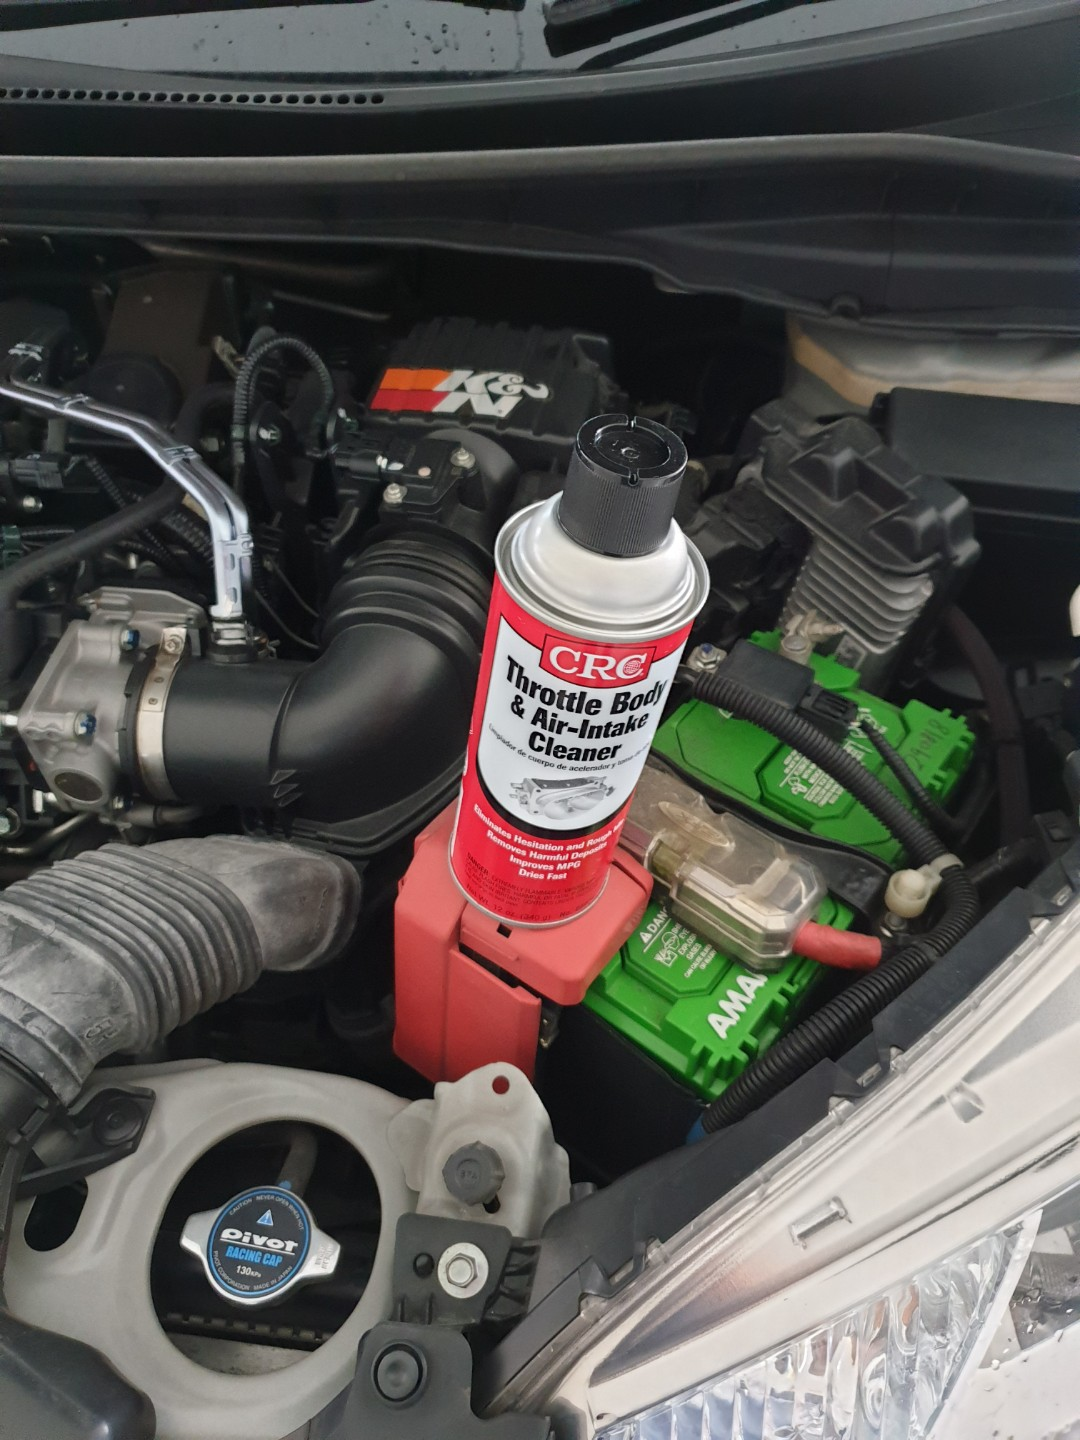 Crc Throttle Body and Air Intake Cleaner